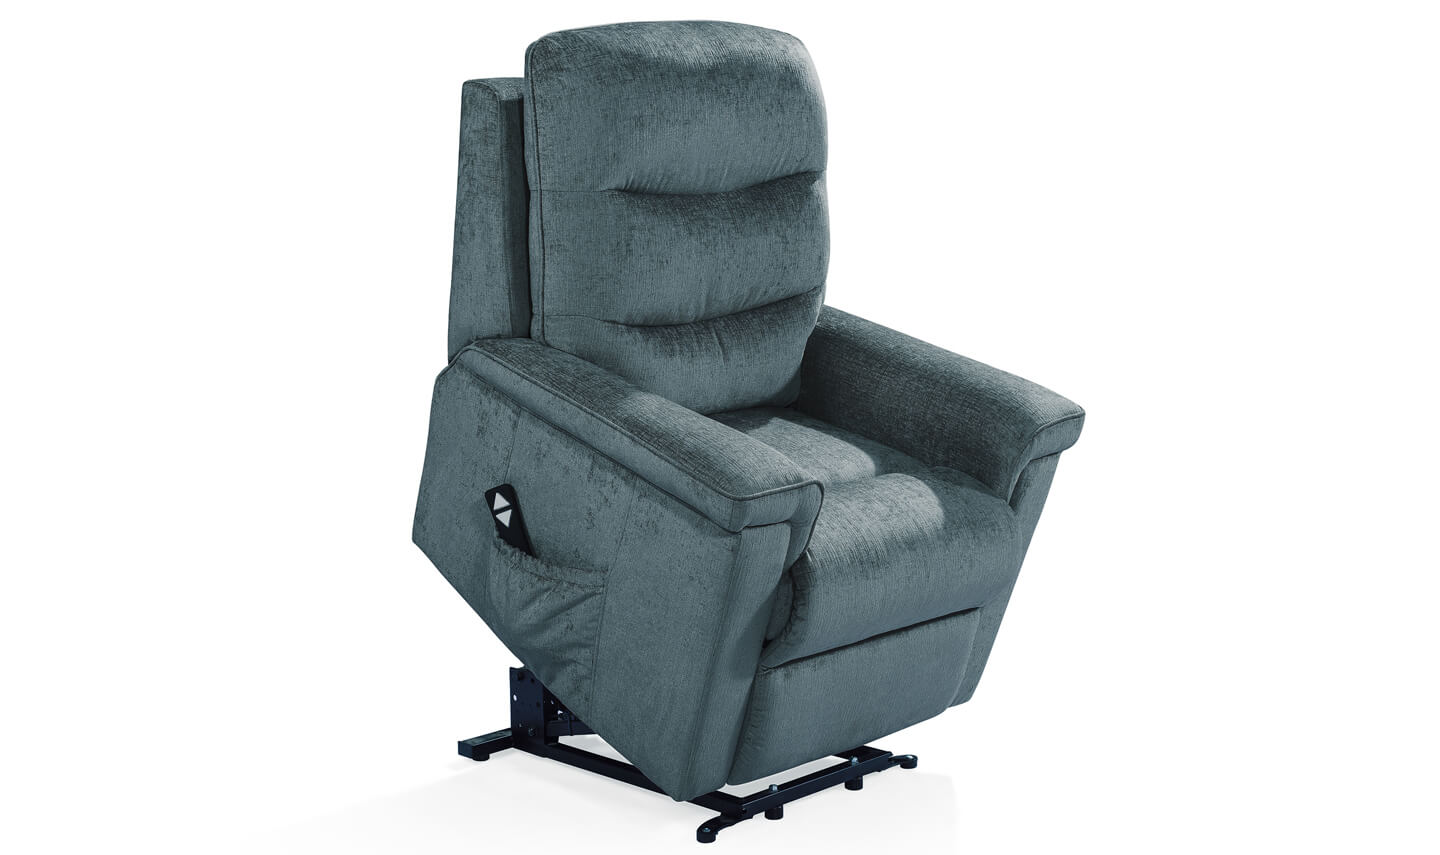 Glencoe Electric Lifet & Rise Recliner Charcoal